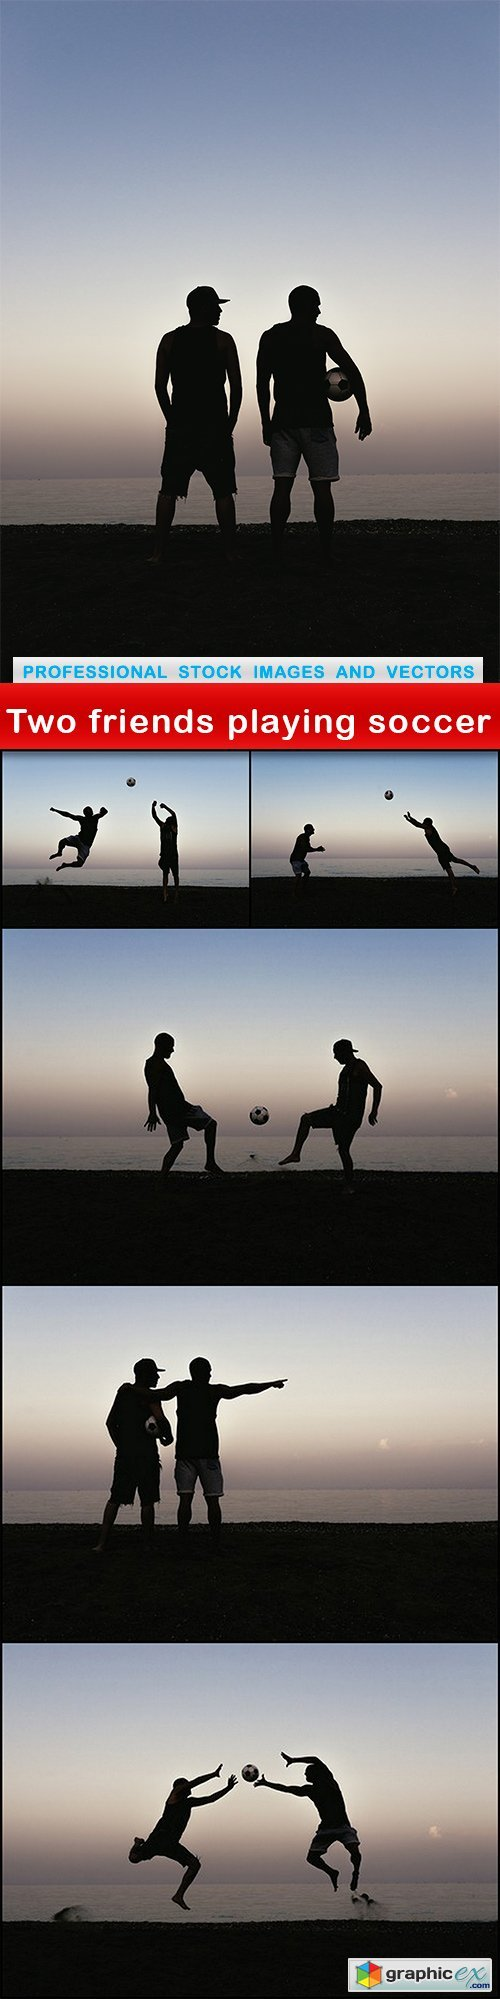 Two friends playing soccer - 6 UHQ JPEG